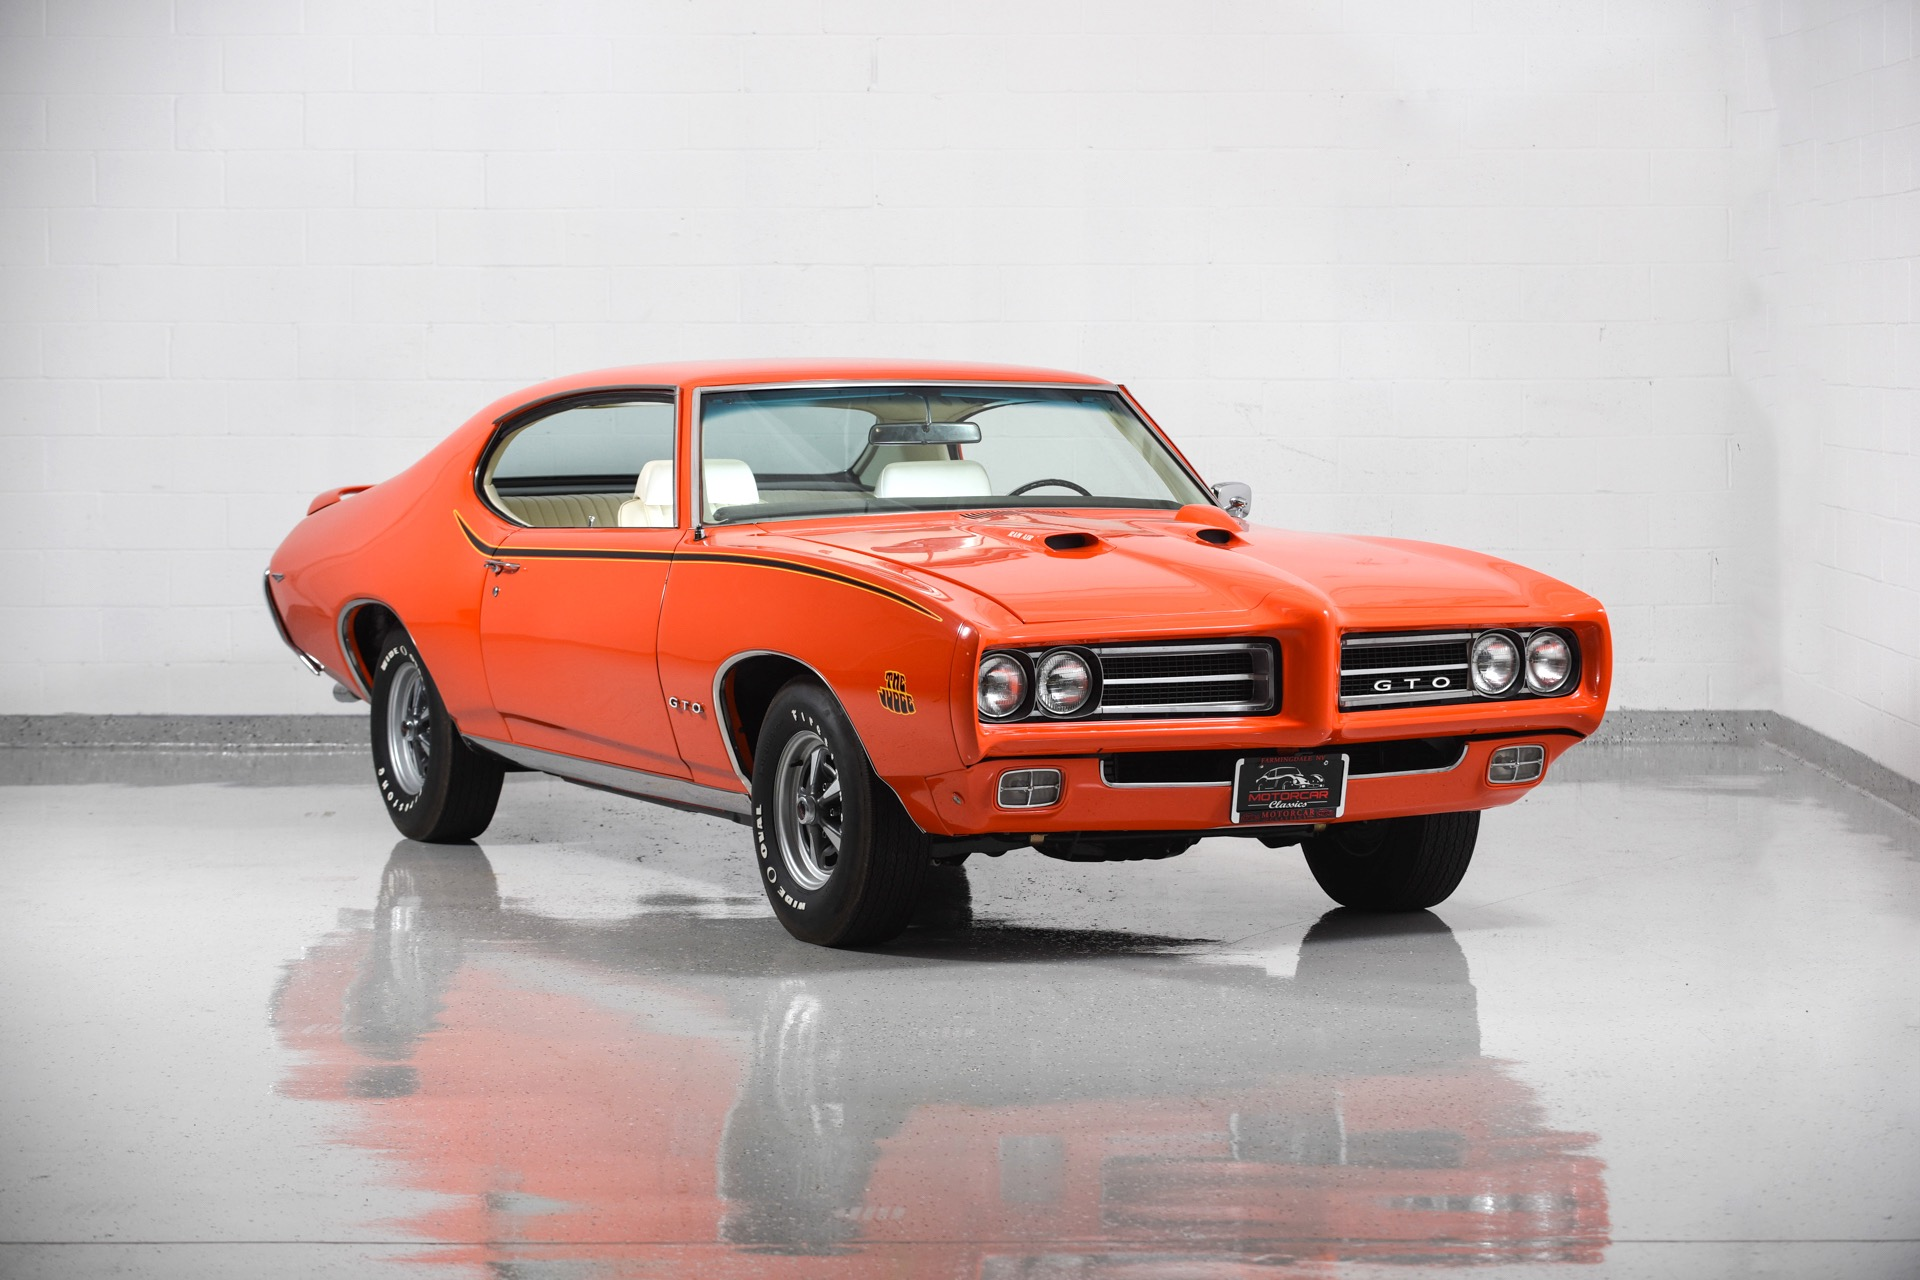 Used 1969 Pontiac GTO Judge For Sale ($64,900).